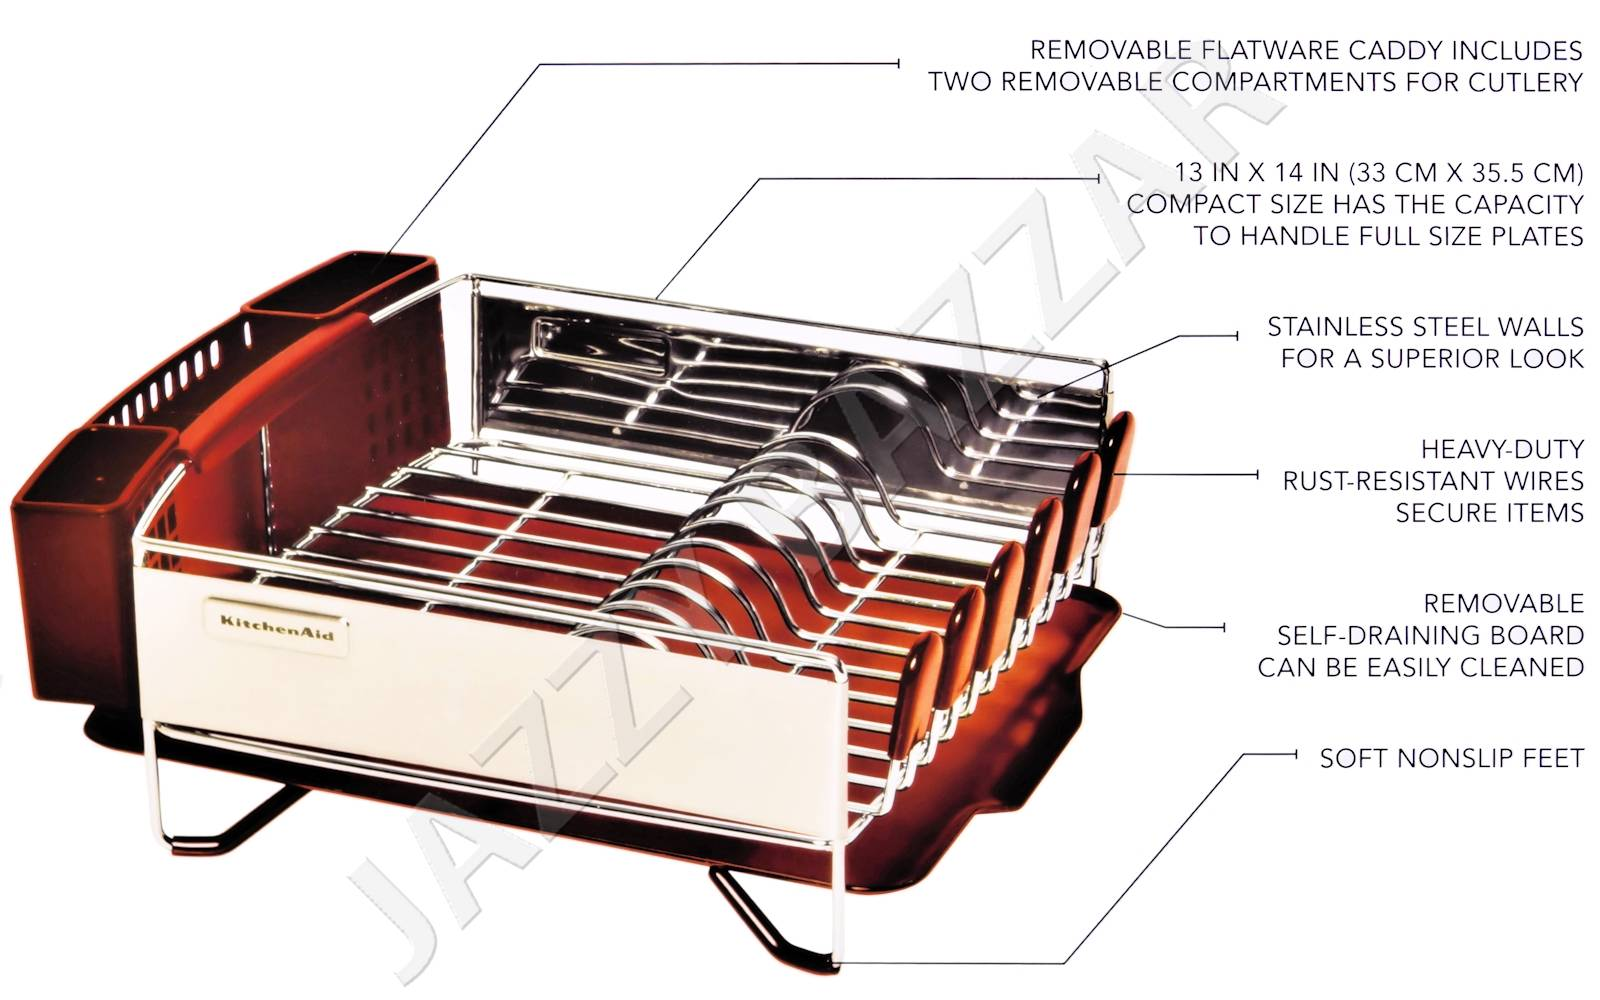 3pc kitchen aid red stainless steel dish drying rack cutlery drainer tray new ebay. Black Bedroom Furniture Sets. Home Design Ideas